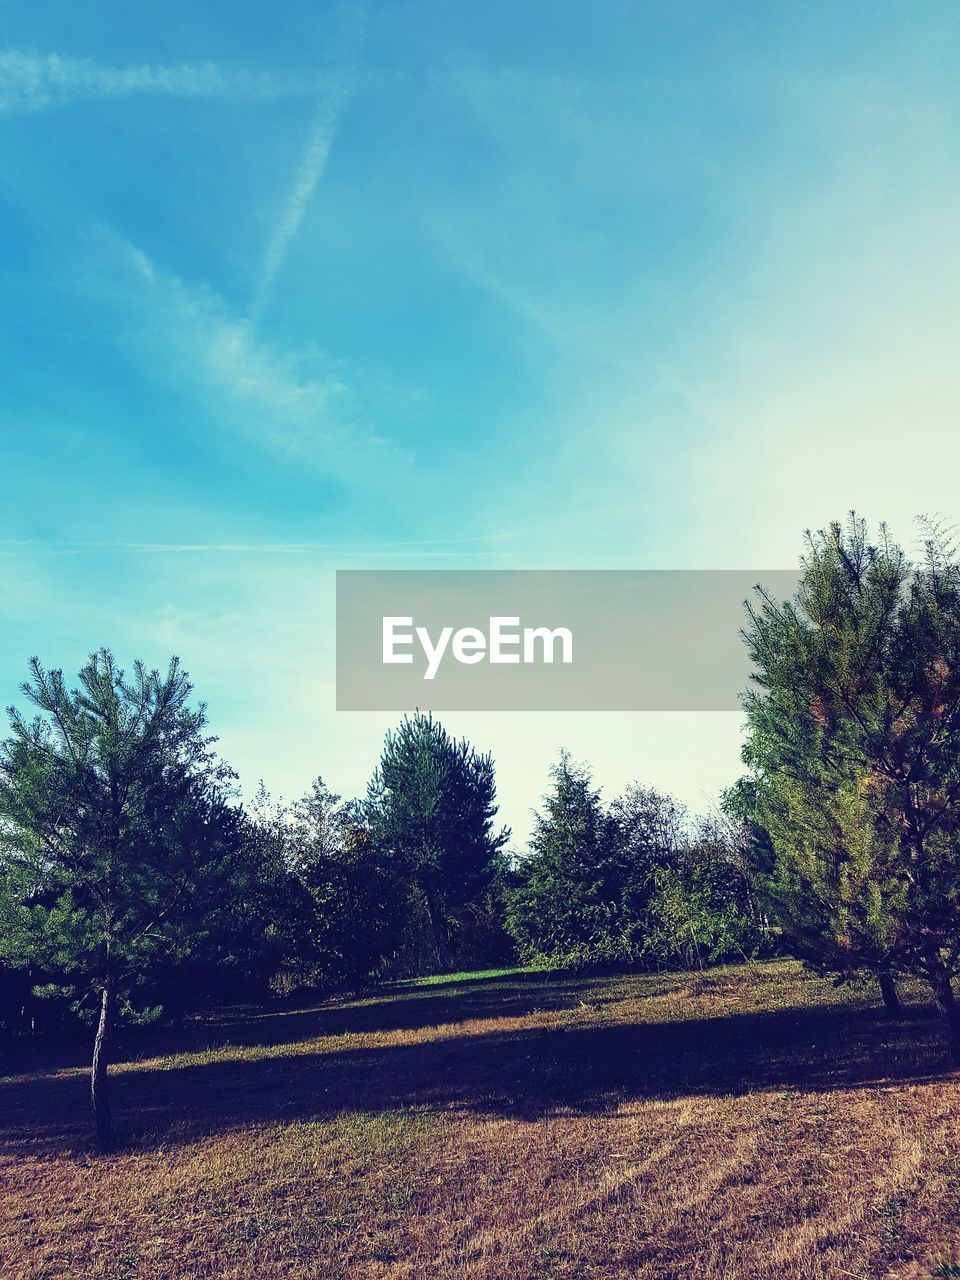 tree, plant, sky, tranquility, tranquil scene, cloud - sky, beauty in nature, nature, no people, day, growth, land, scenics - nature, landscape, field, environment, sunlight, grass, outdoors, non-urban scene